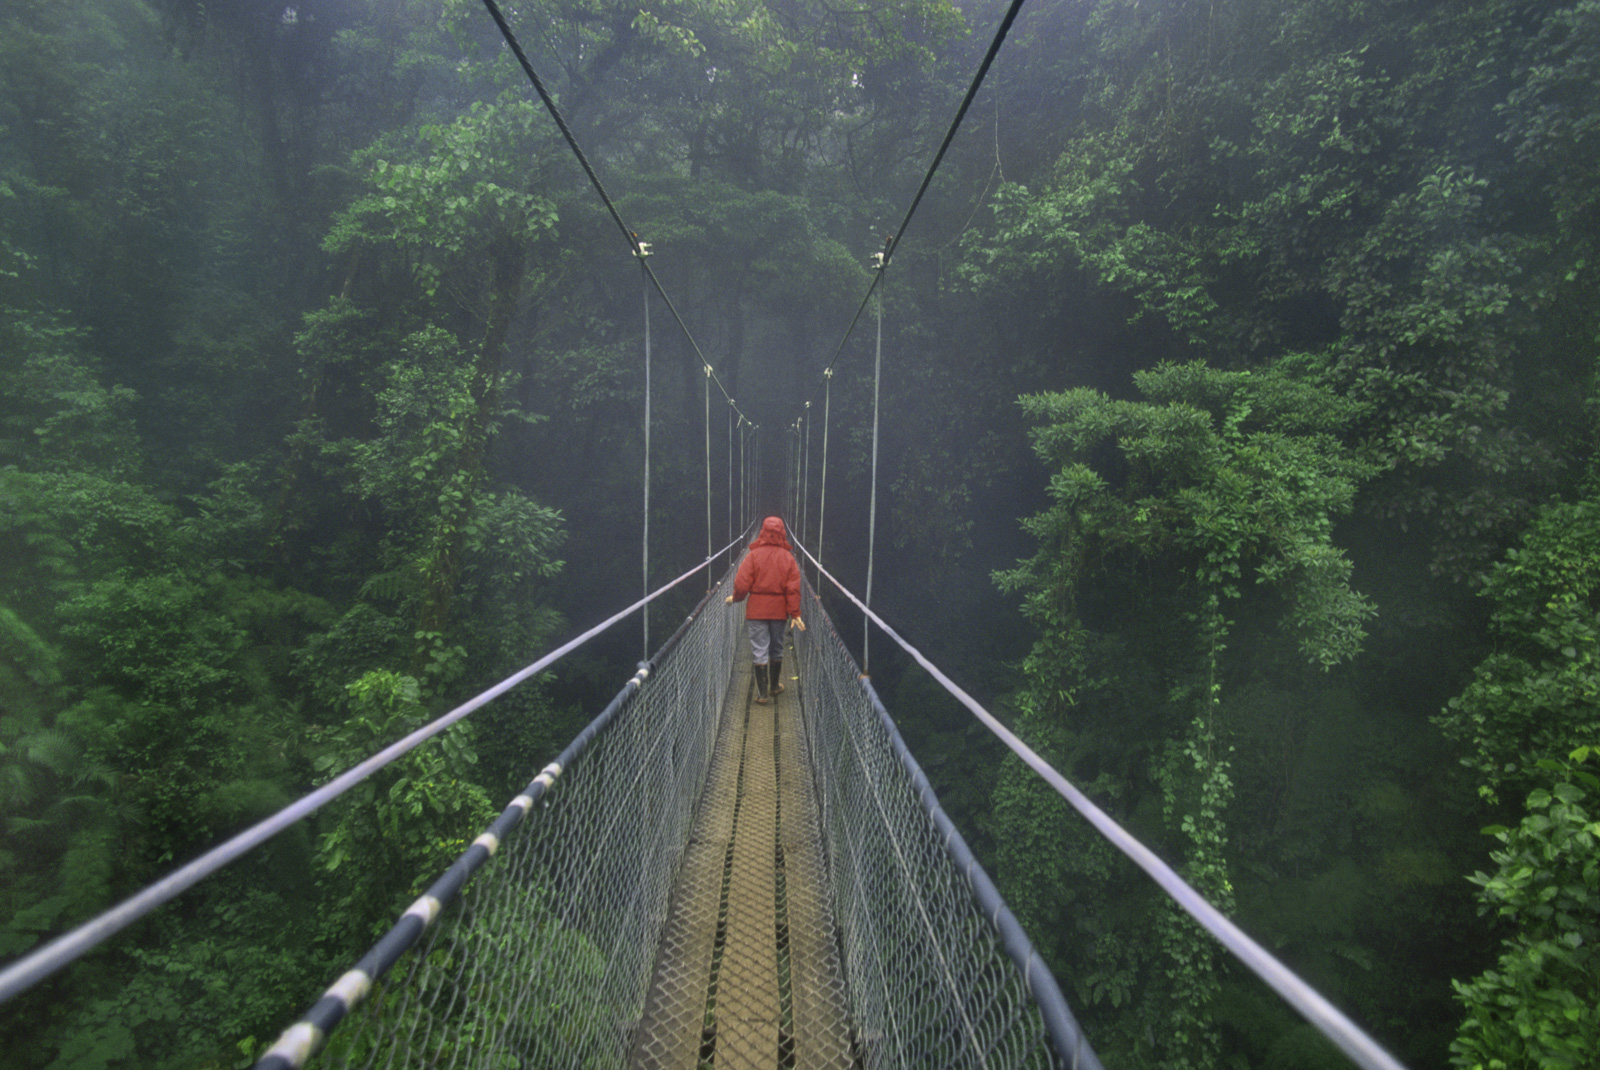 Hiker on canopy walkway, Monteverde Cloud Forest Preserve, Costa Rica